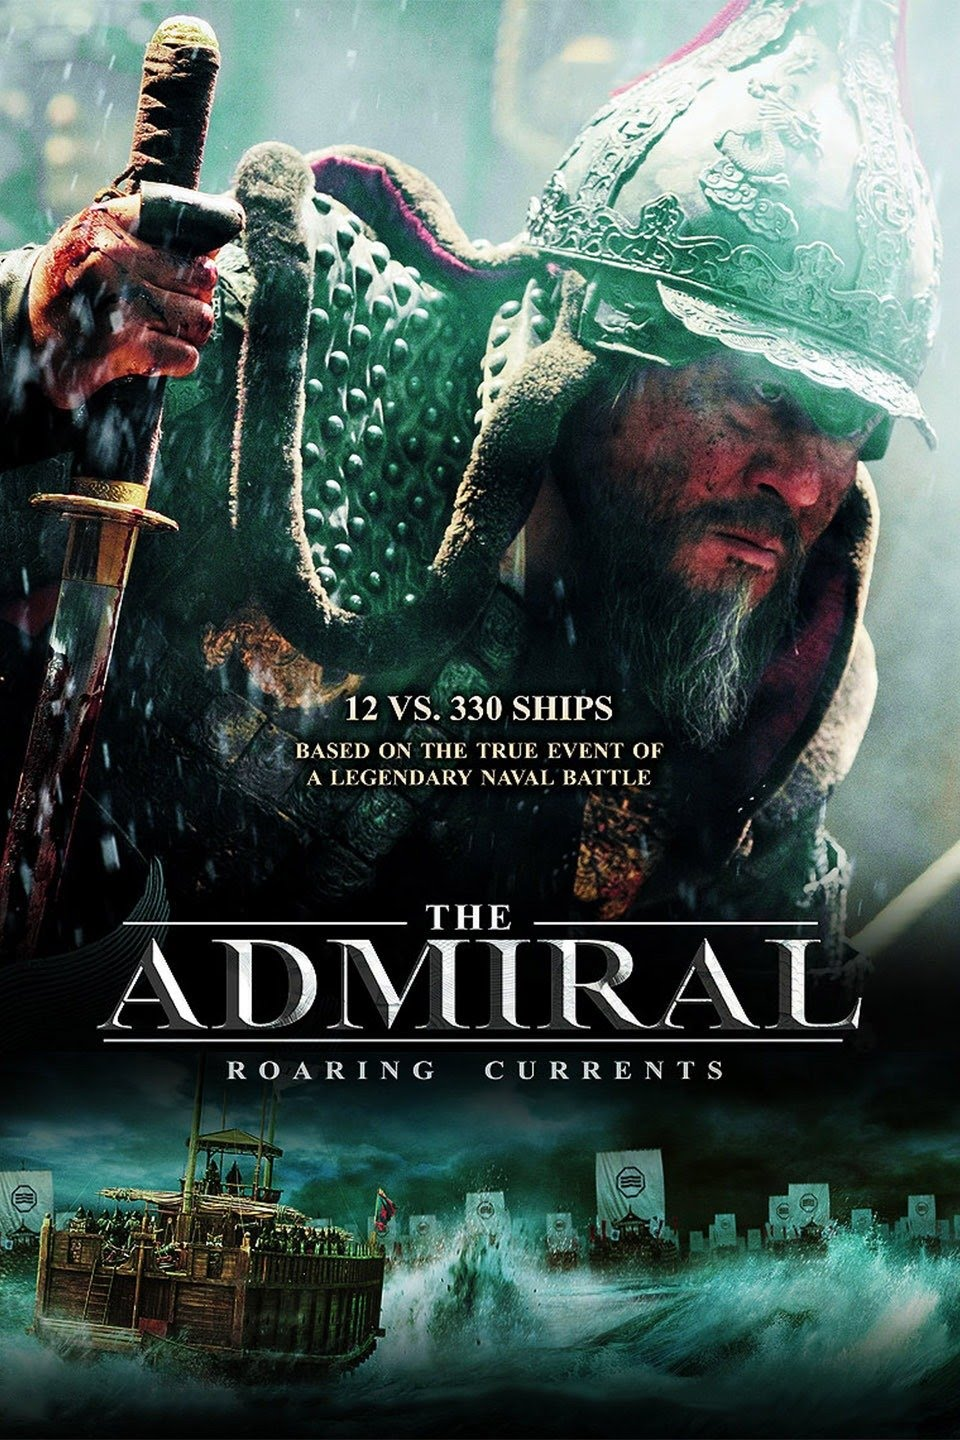 The Admiral Roaring Currents 2014 Hindi Dual Audio 720p UNCUT BluRay 1.4GB ESub Download